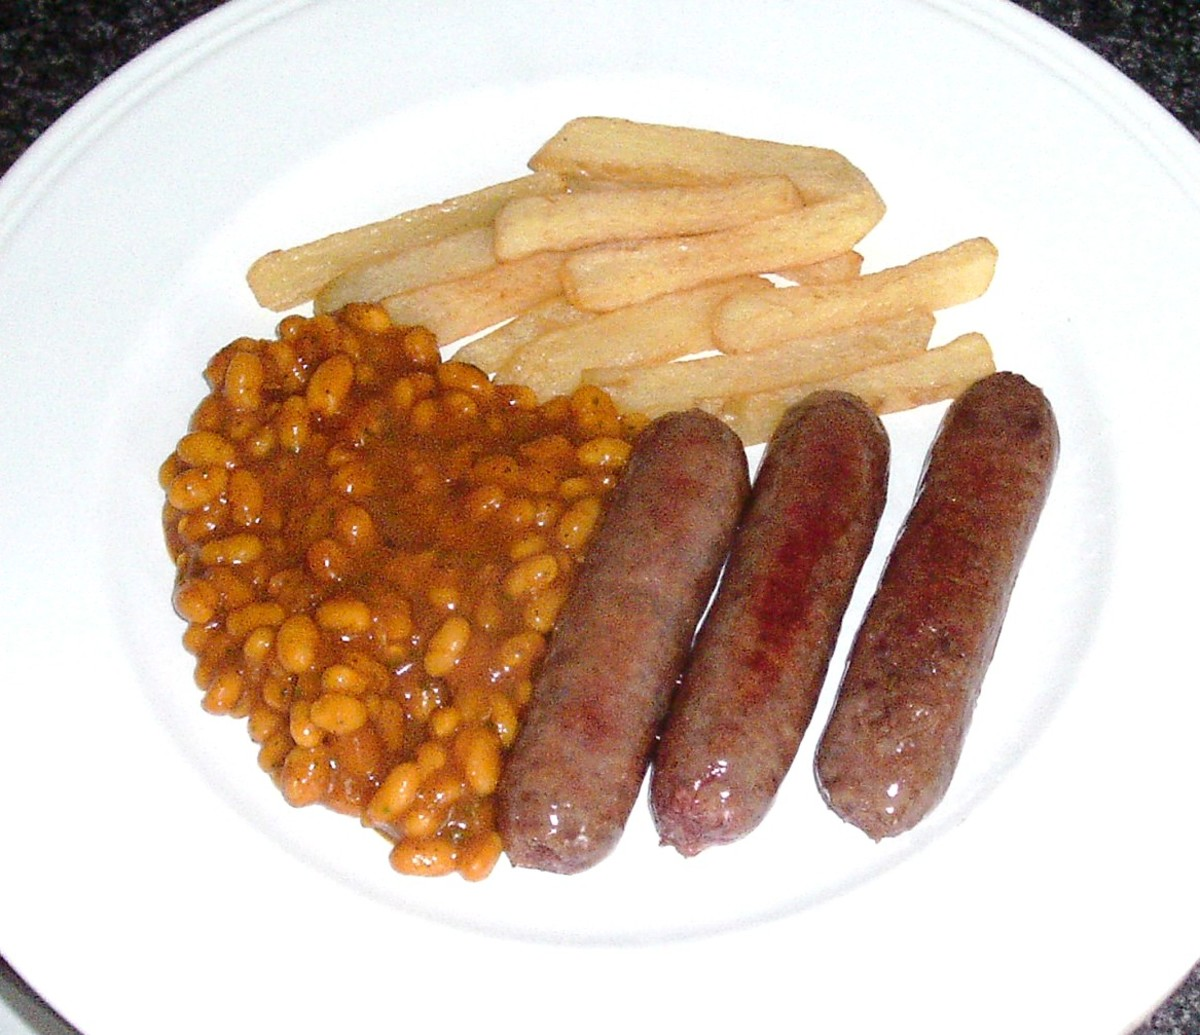 Venison sausages, chips and beans are plated